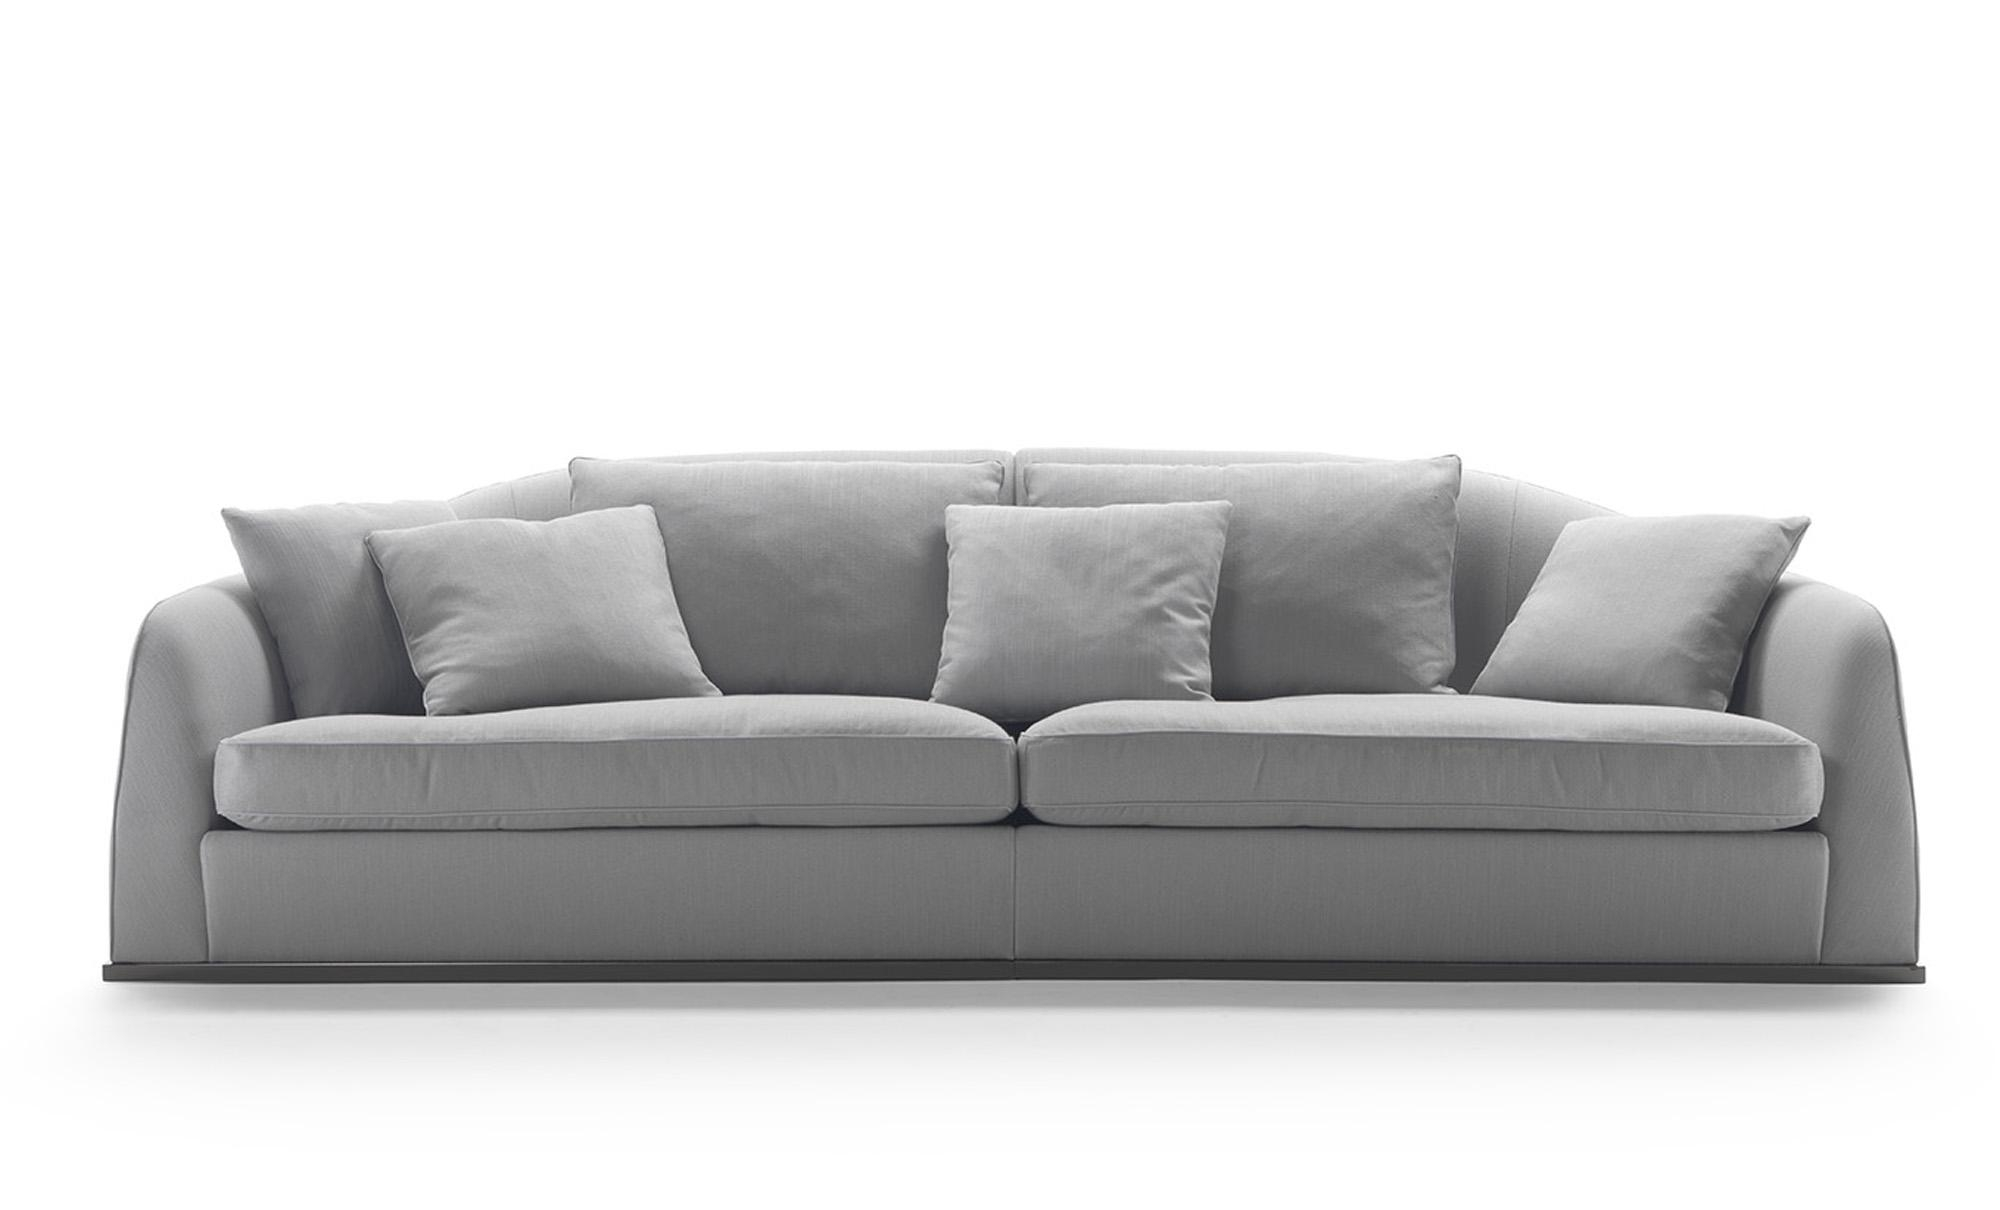 Flexform Mood Furniture – Fanuli Furniture For Flexform Sofas (View 17 of 20)